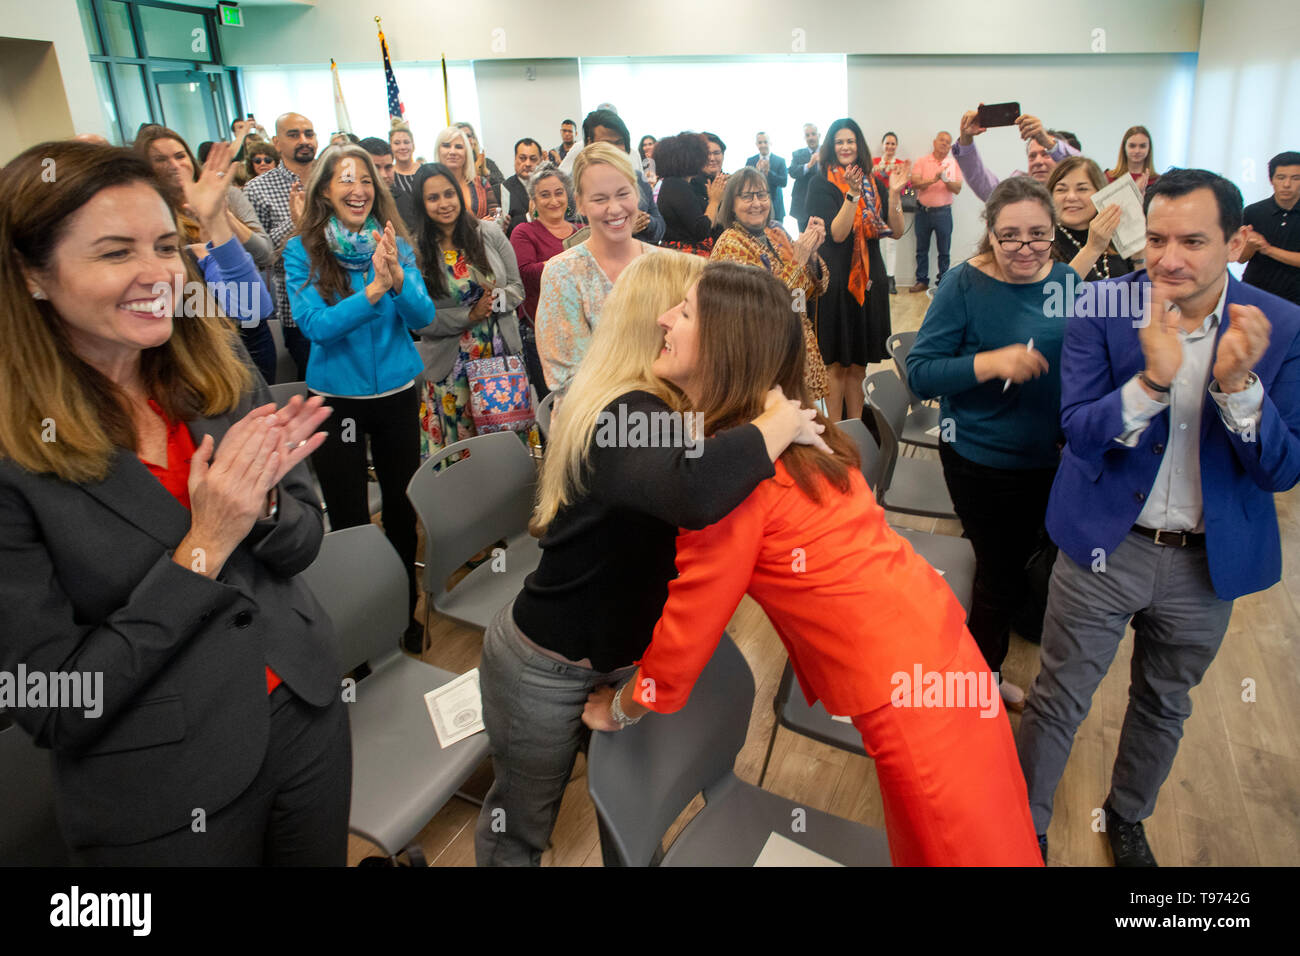 A woman politician is greeted with hugs and applause at her swearing-in for public office in Newport Beach, CA. Stock Photo